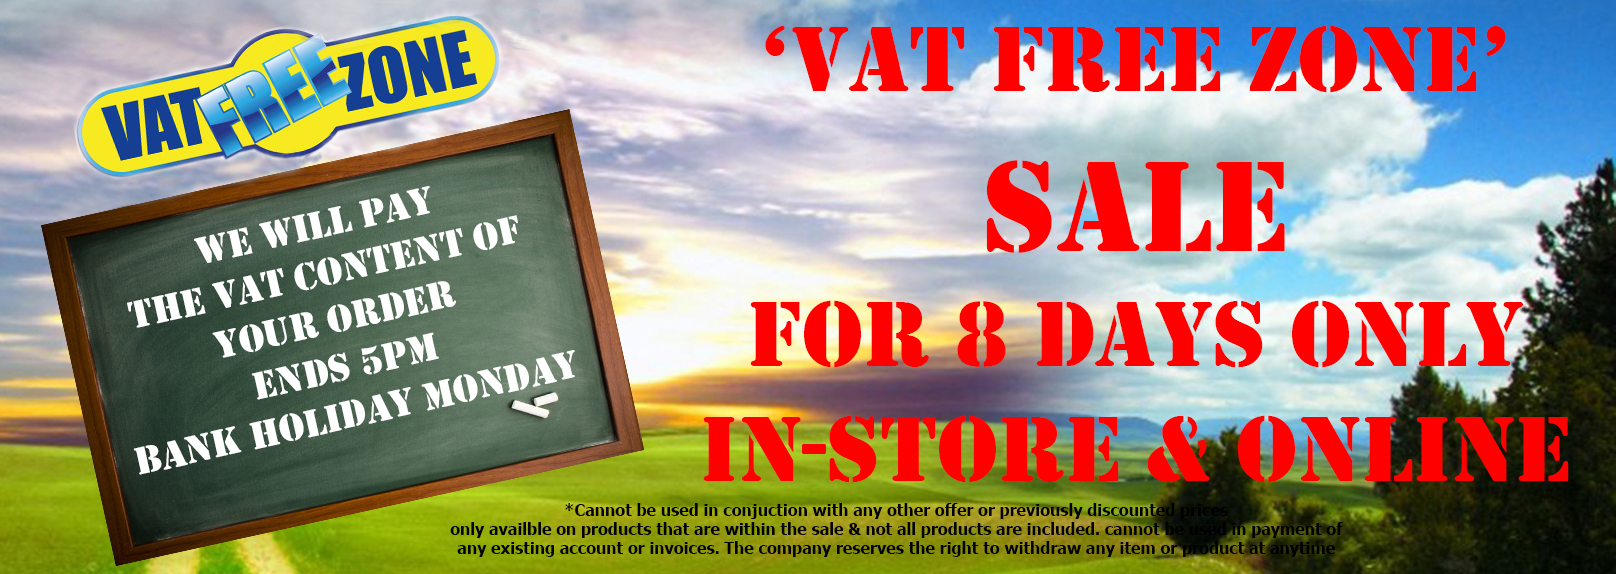 August 2016 Vat free bank holiday